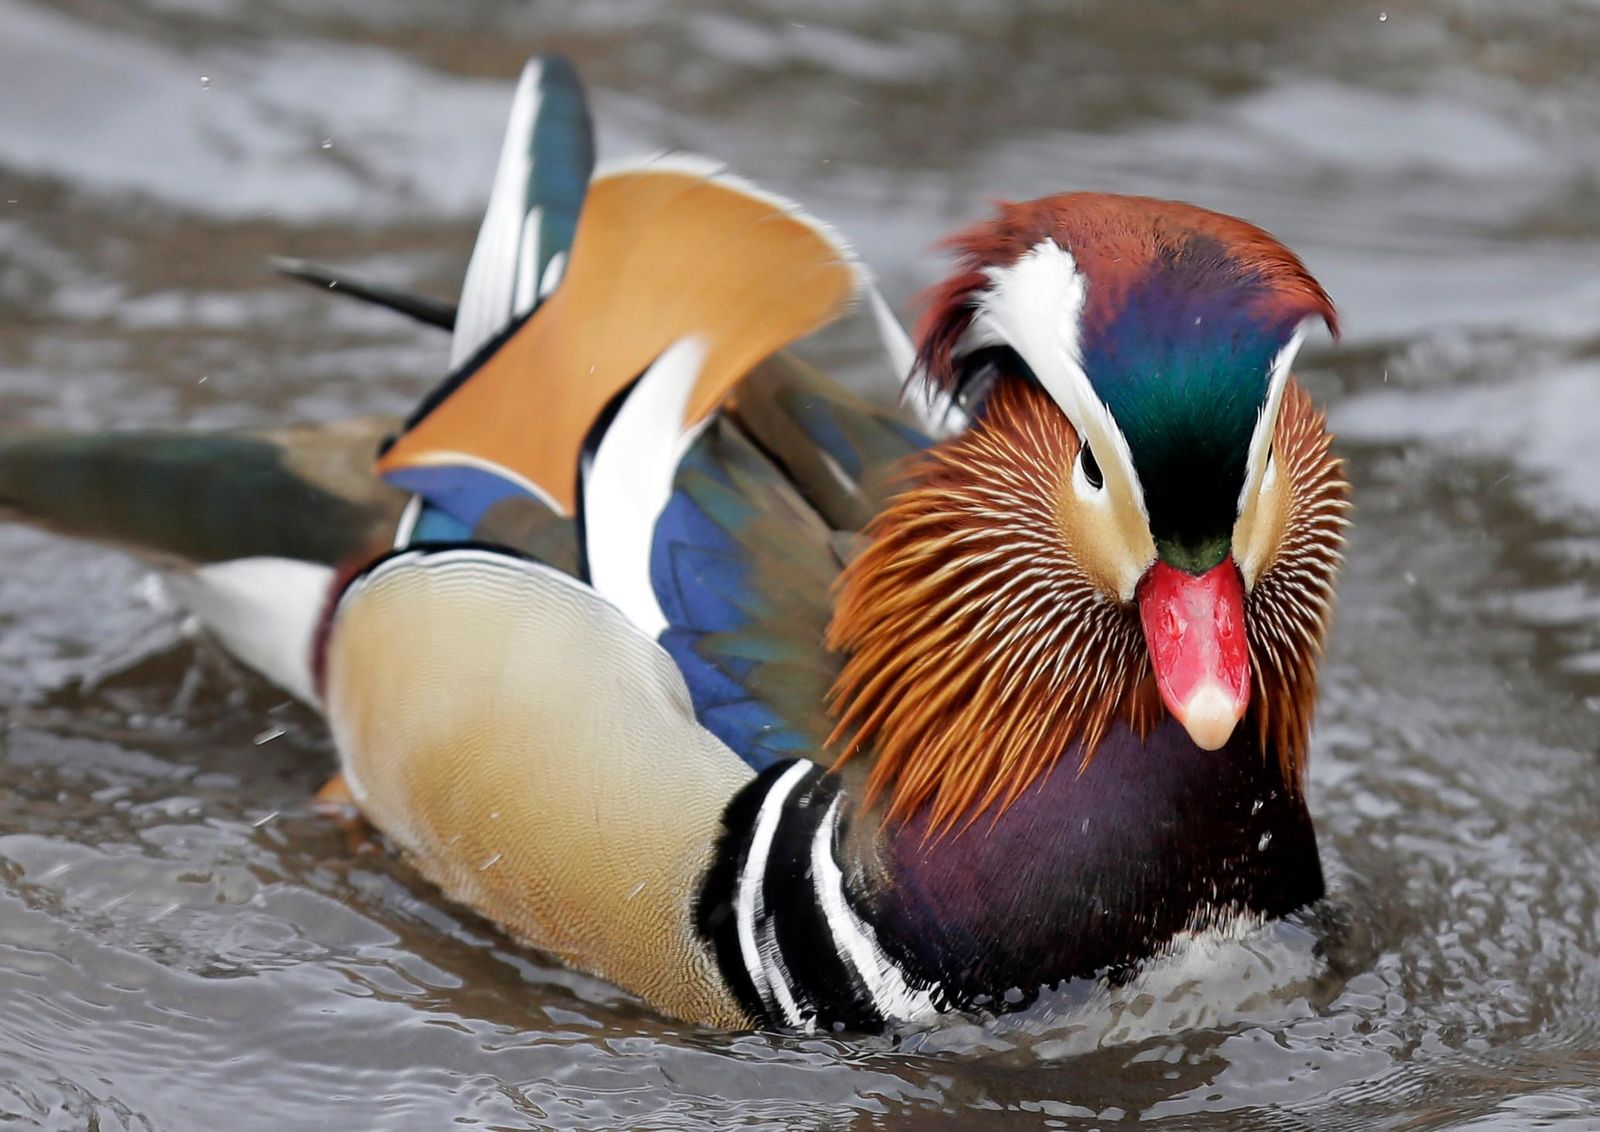 A Mandarin duck swims in Central Park in New York, Wednesday, Dec. 5, 2018. In the weeks since it appeared in Central Park, the duck has become a celebrity. (AP Photo/Seth Wenig)